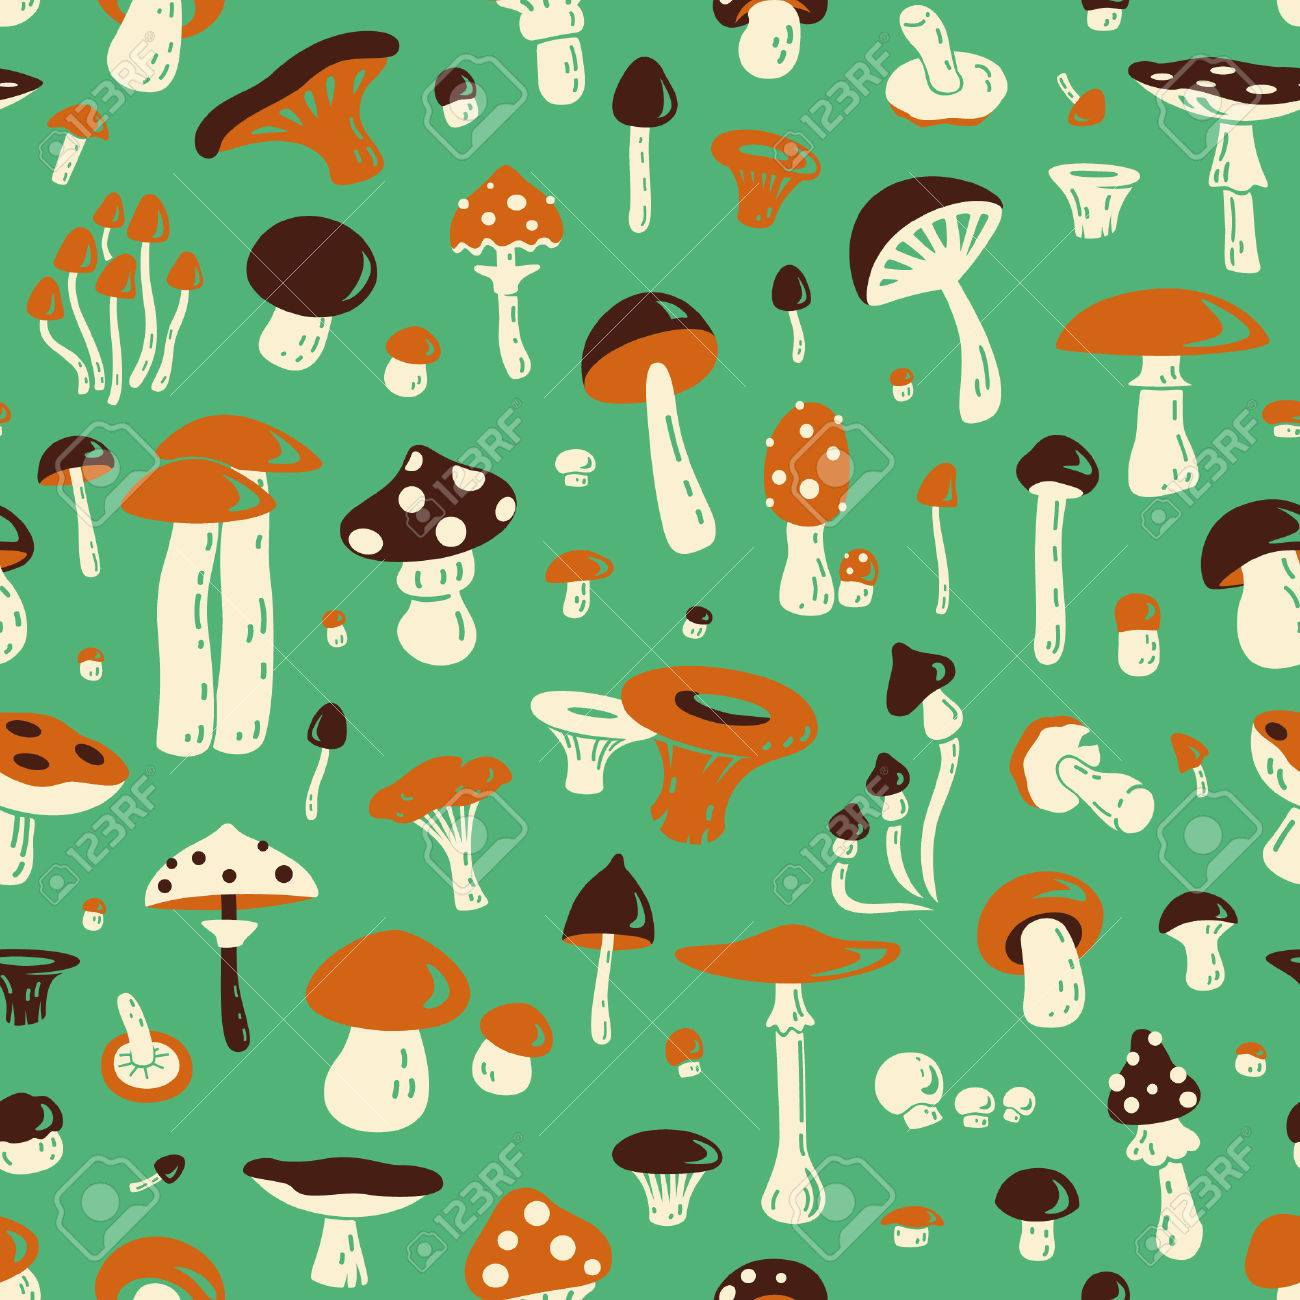 Seamless Pattern With Mushroom For Fabric Postcards Prints Royalty Free Cliparts Vectors And Stock Illustration Image 48691502